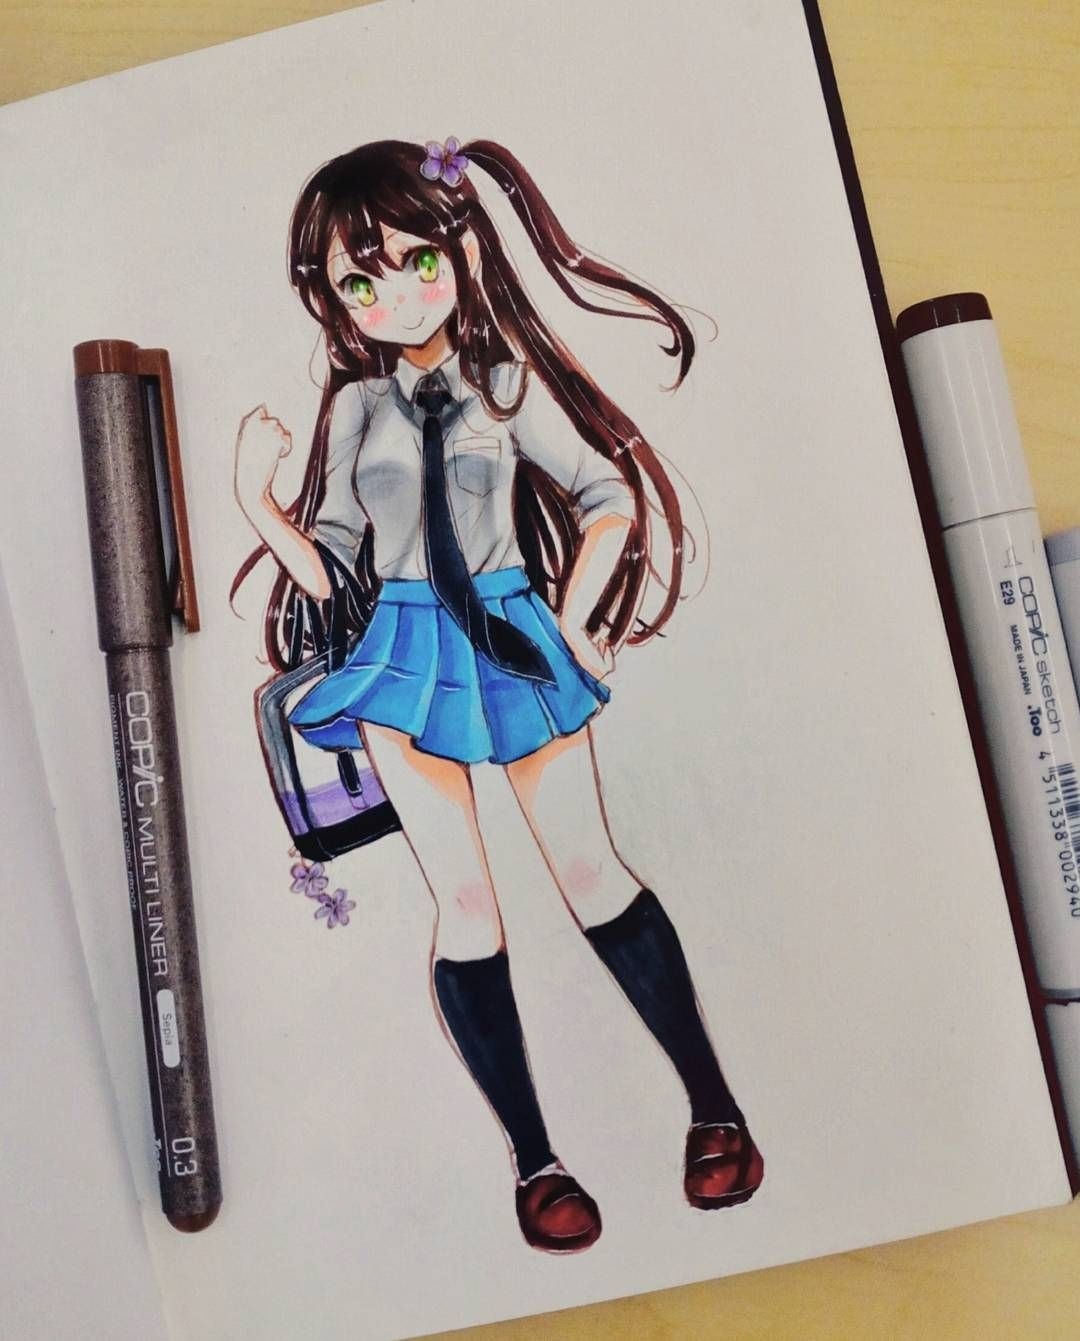 The Top 75 Amazing Anime Style Artists Illustrators To Follow On Instagram Anime Impulse Anime Drawings Sketches Cute Art Anime